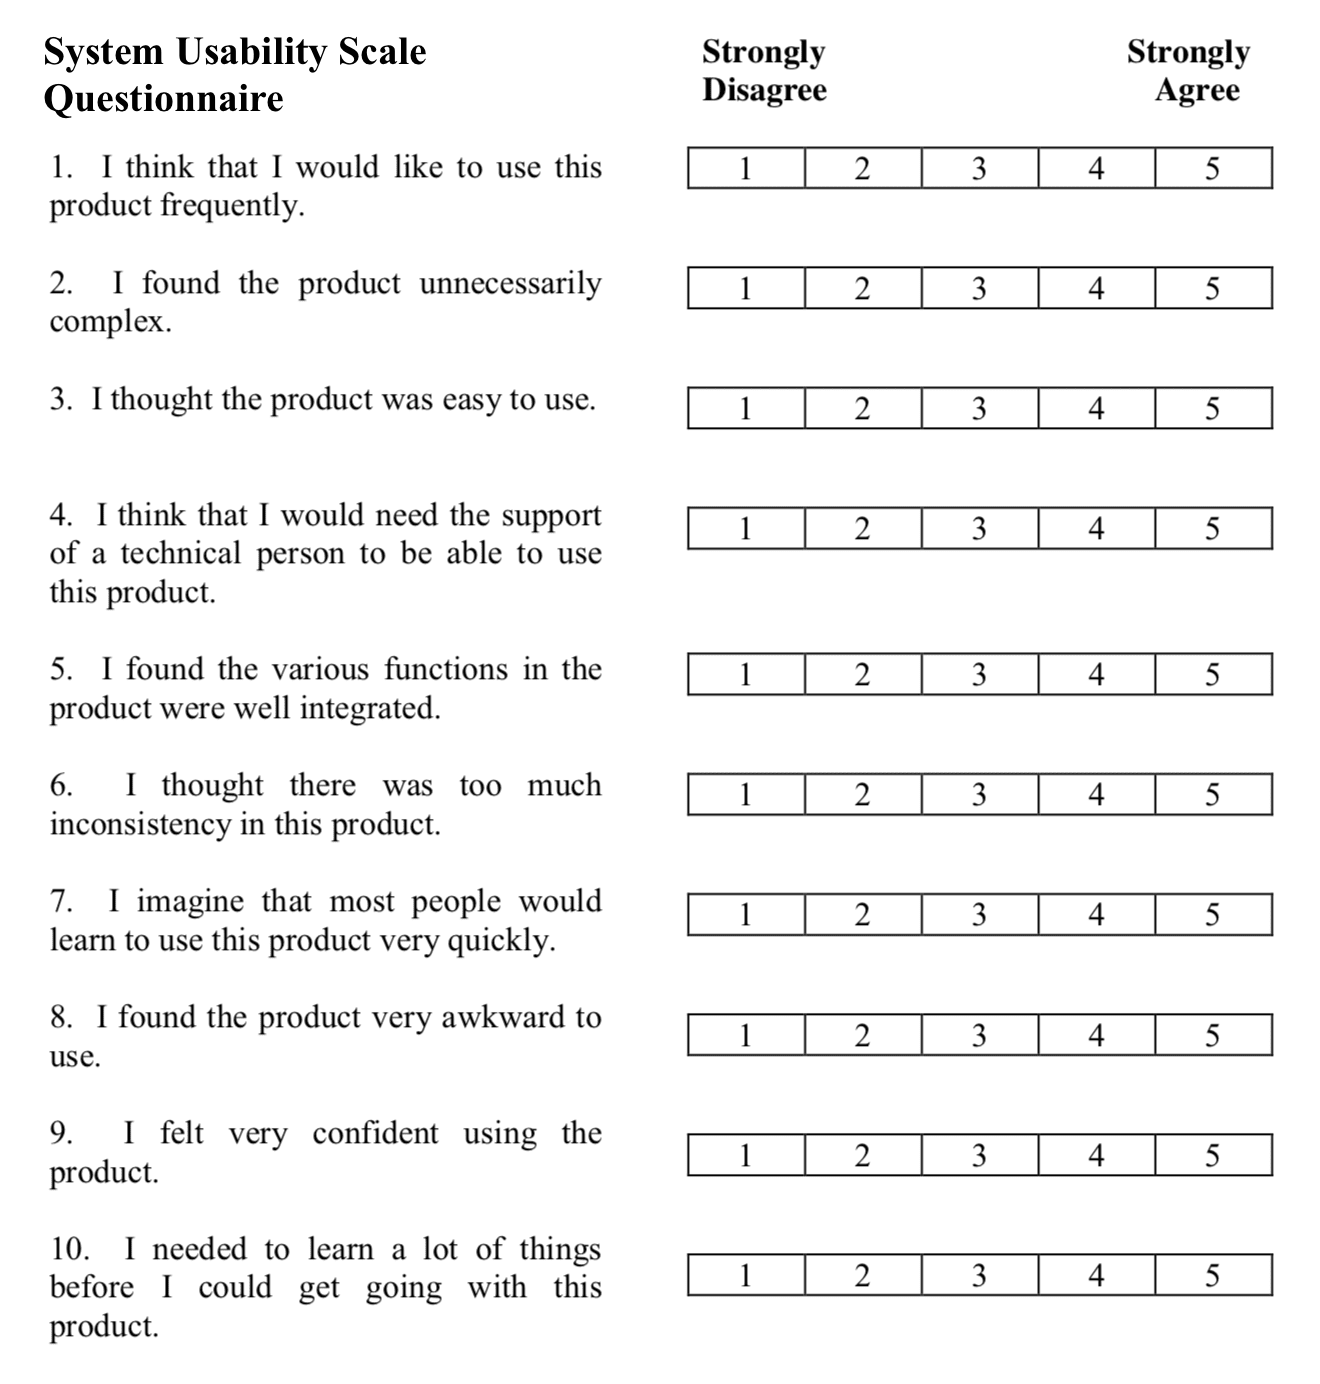 System Usability Scale Questionnaire